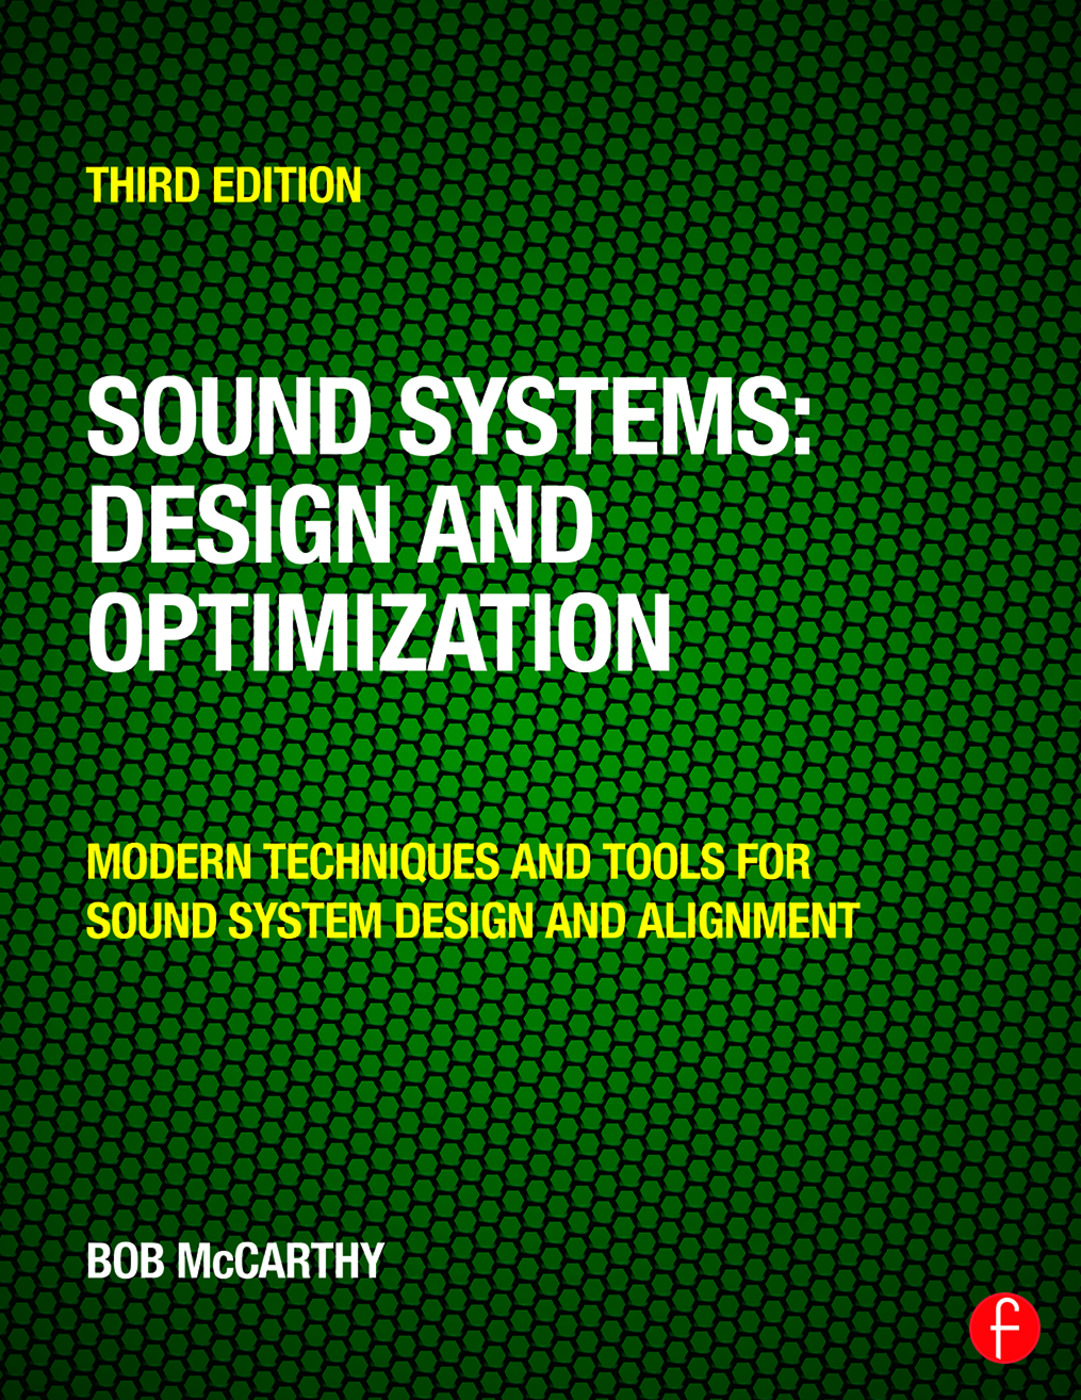 Sound Systems: Design and Optimization: Modern Techniques and Tools for Sound System Design and Alignment book cover